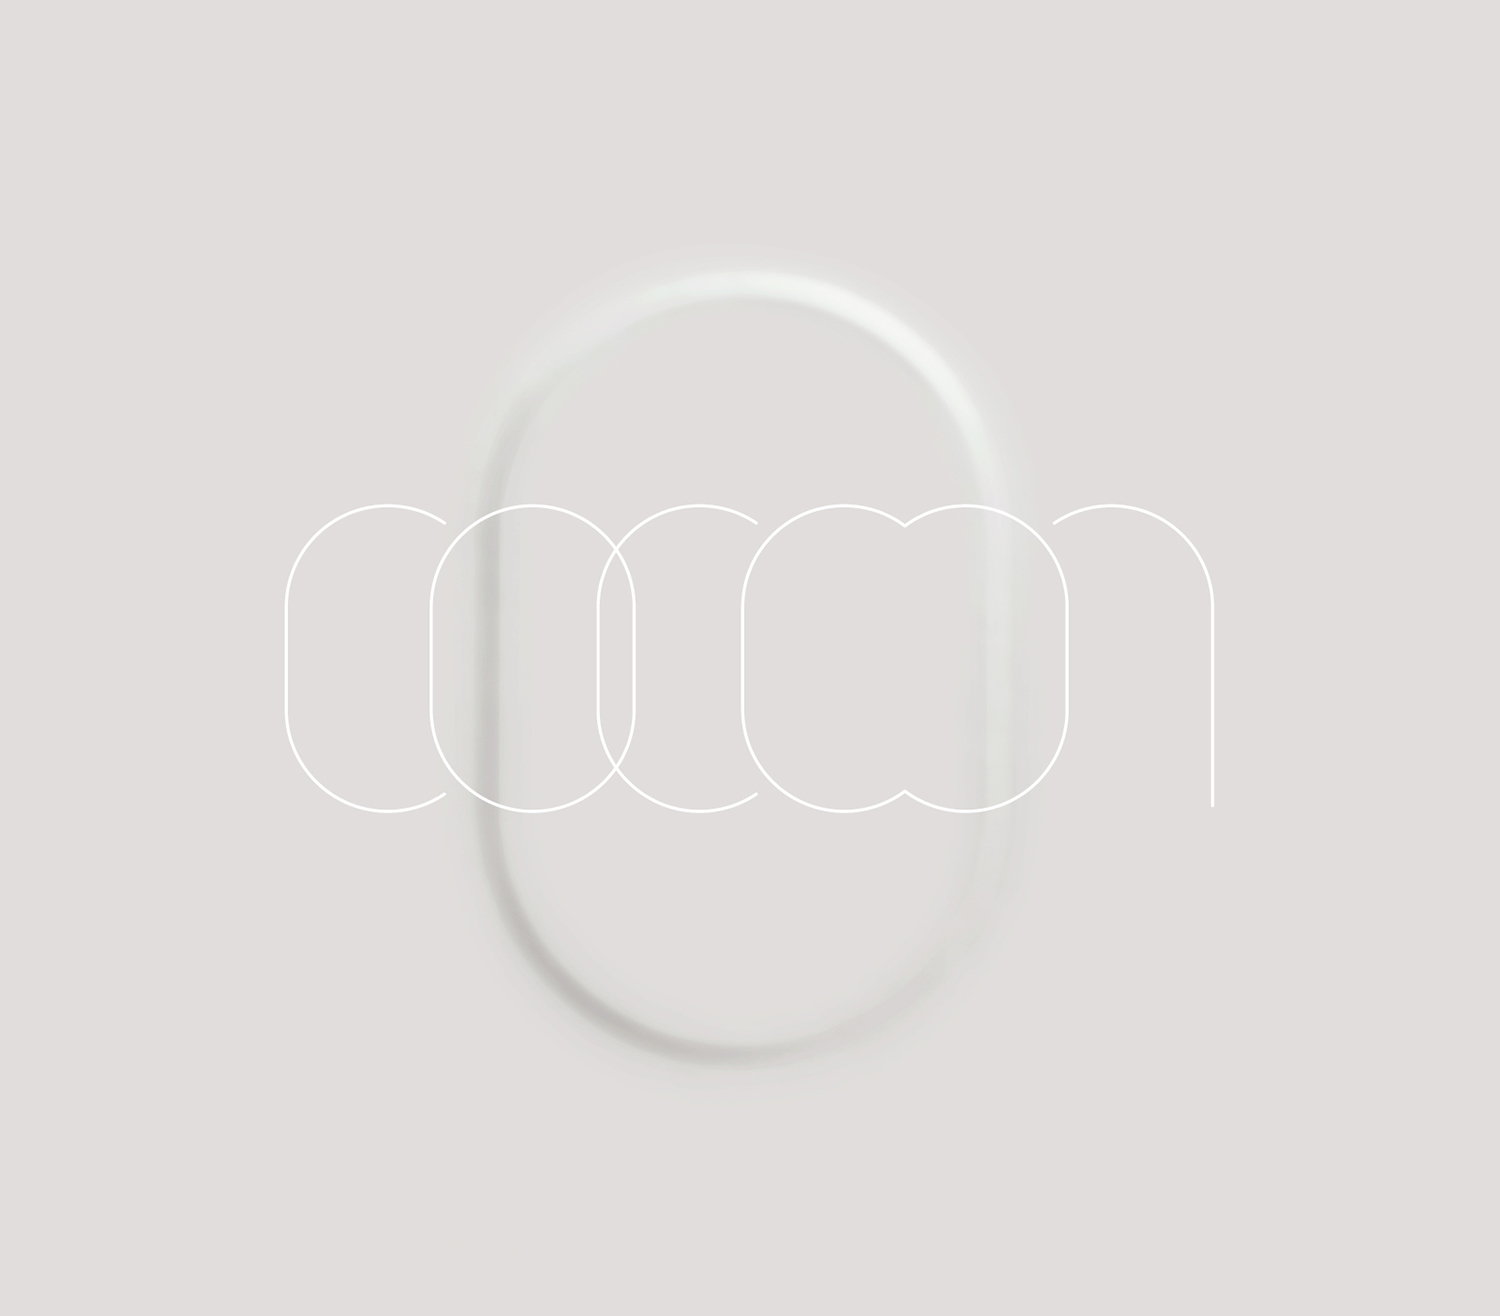 androp『cocoon』初回限定盤